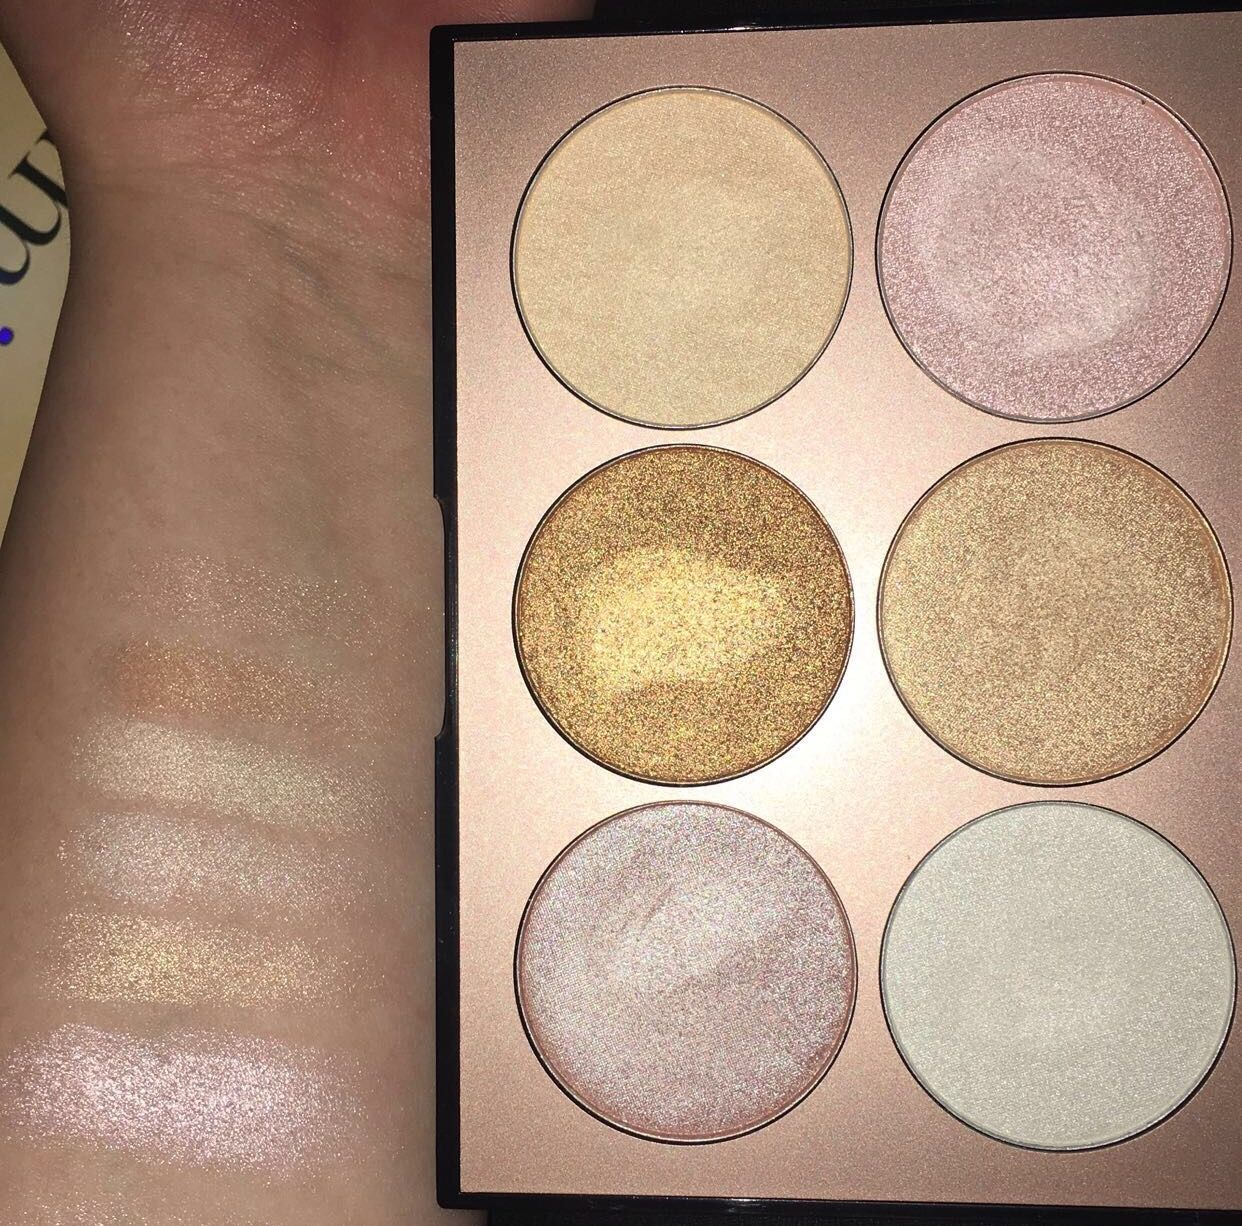 Sephora illuminate palette swatches✨ #highlighter #makeup ...